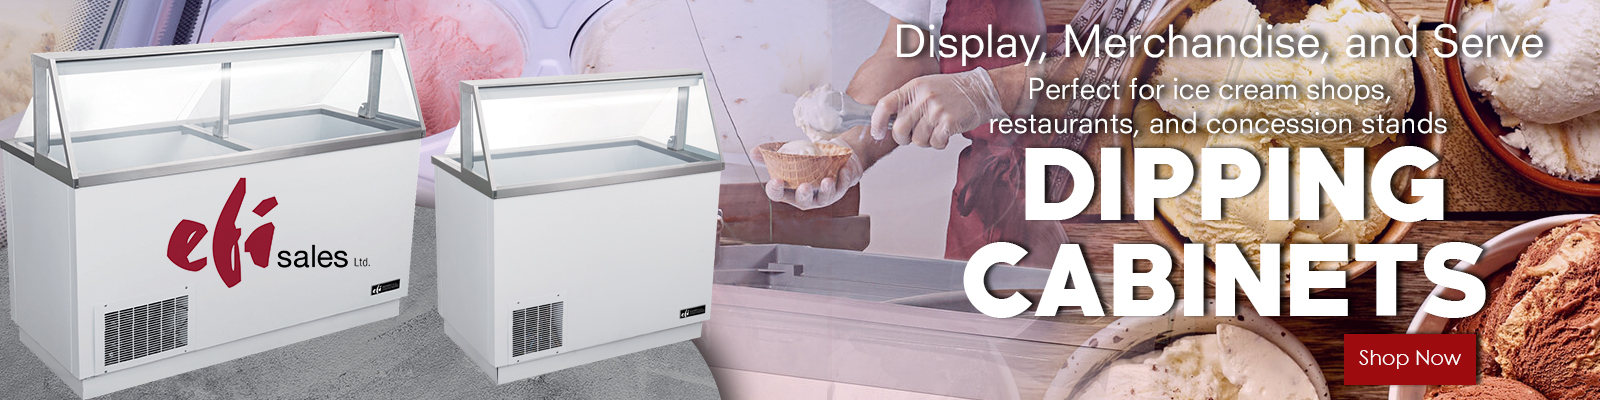 EFI Dipping Cabinet, Commercial Refrigeration Equipment